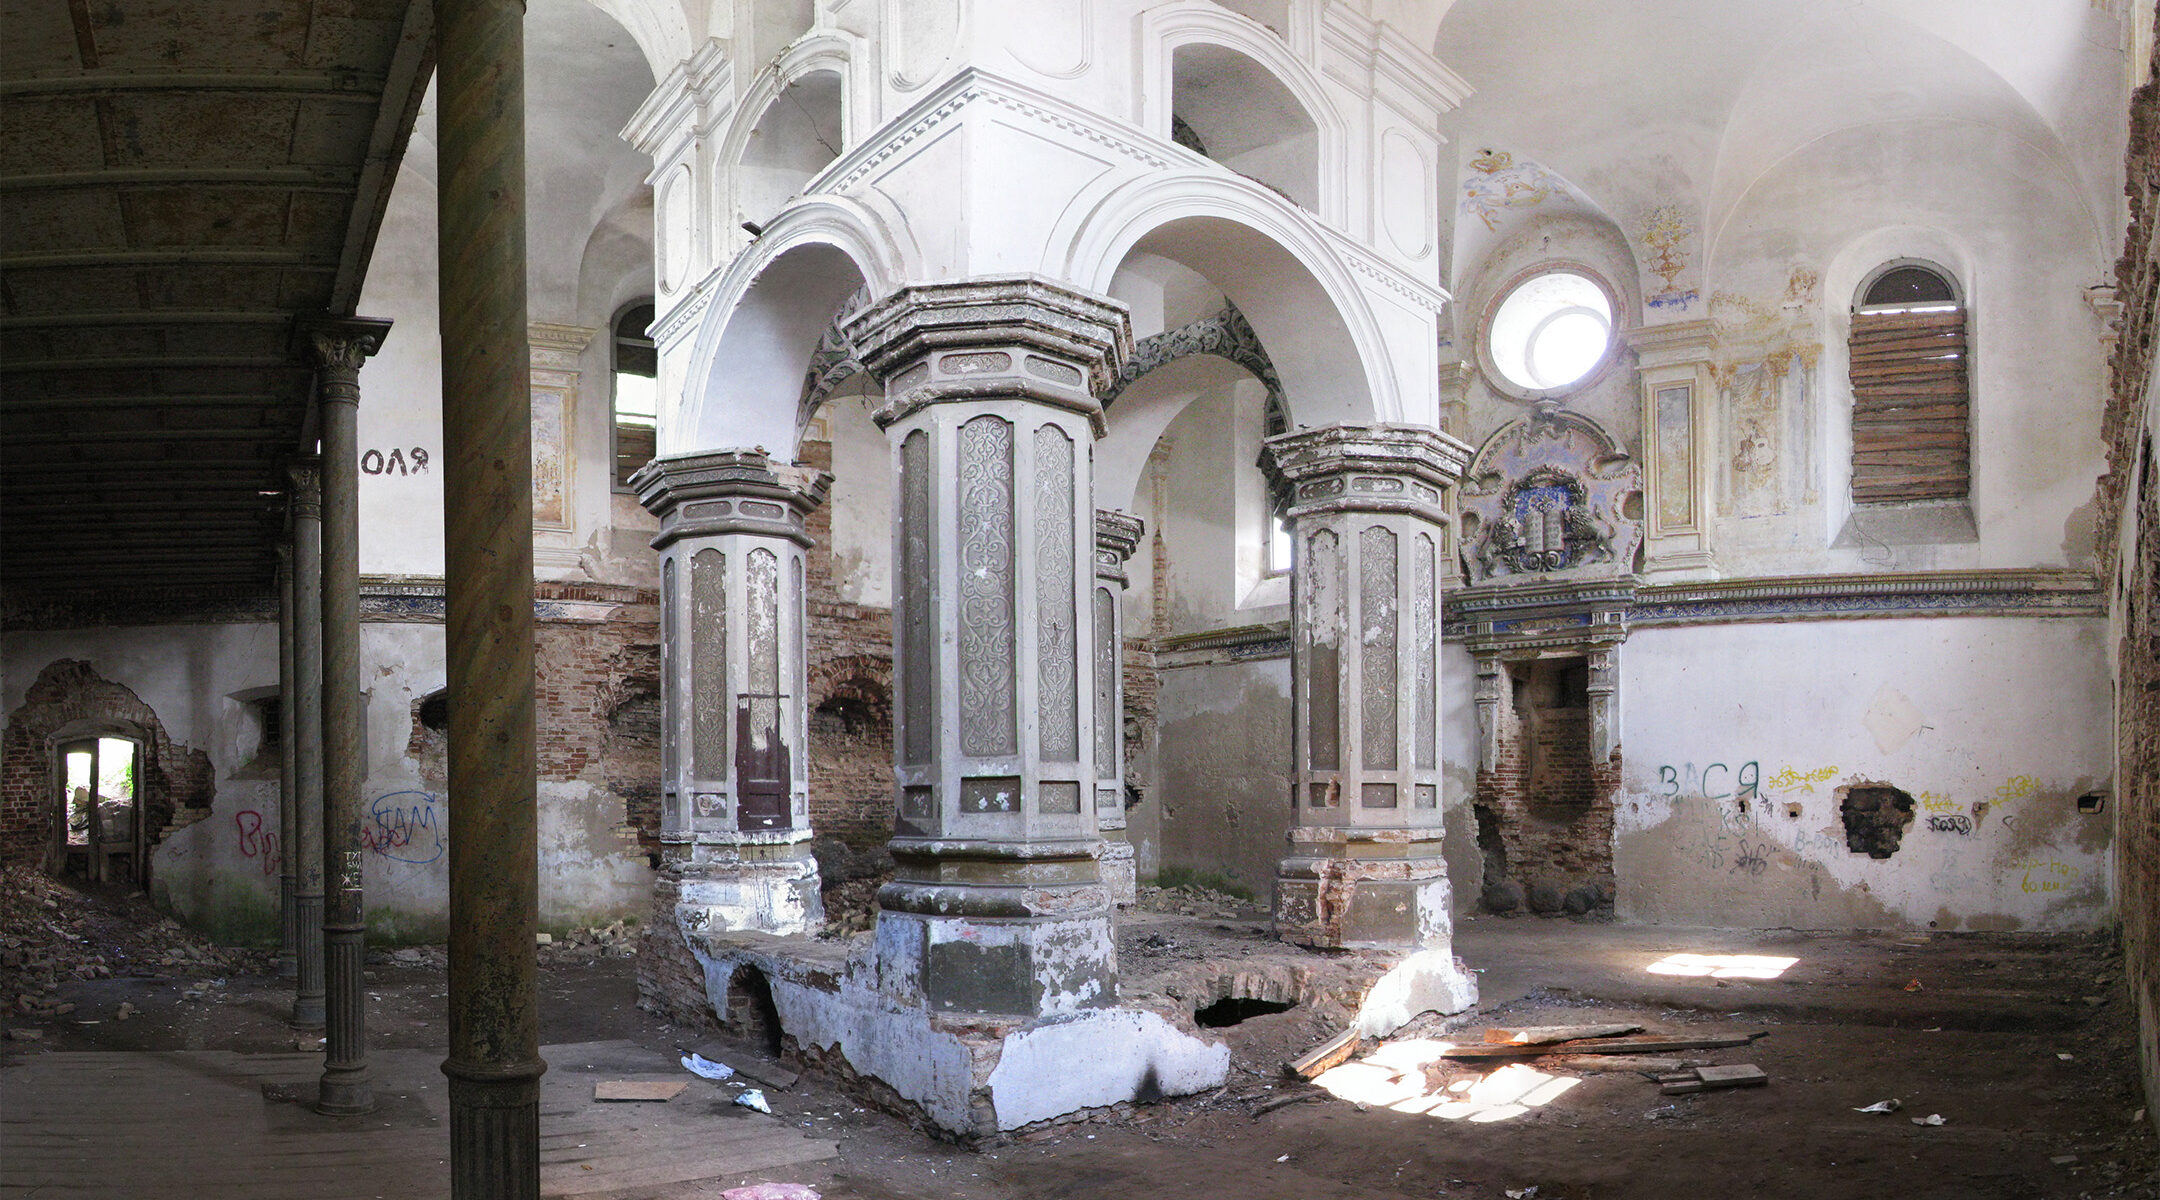 The interior of the Great Synagogue of Slonim, Belarus pictured in 2007. (Wikimedia Commons)